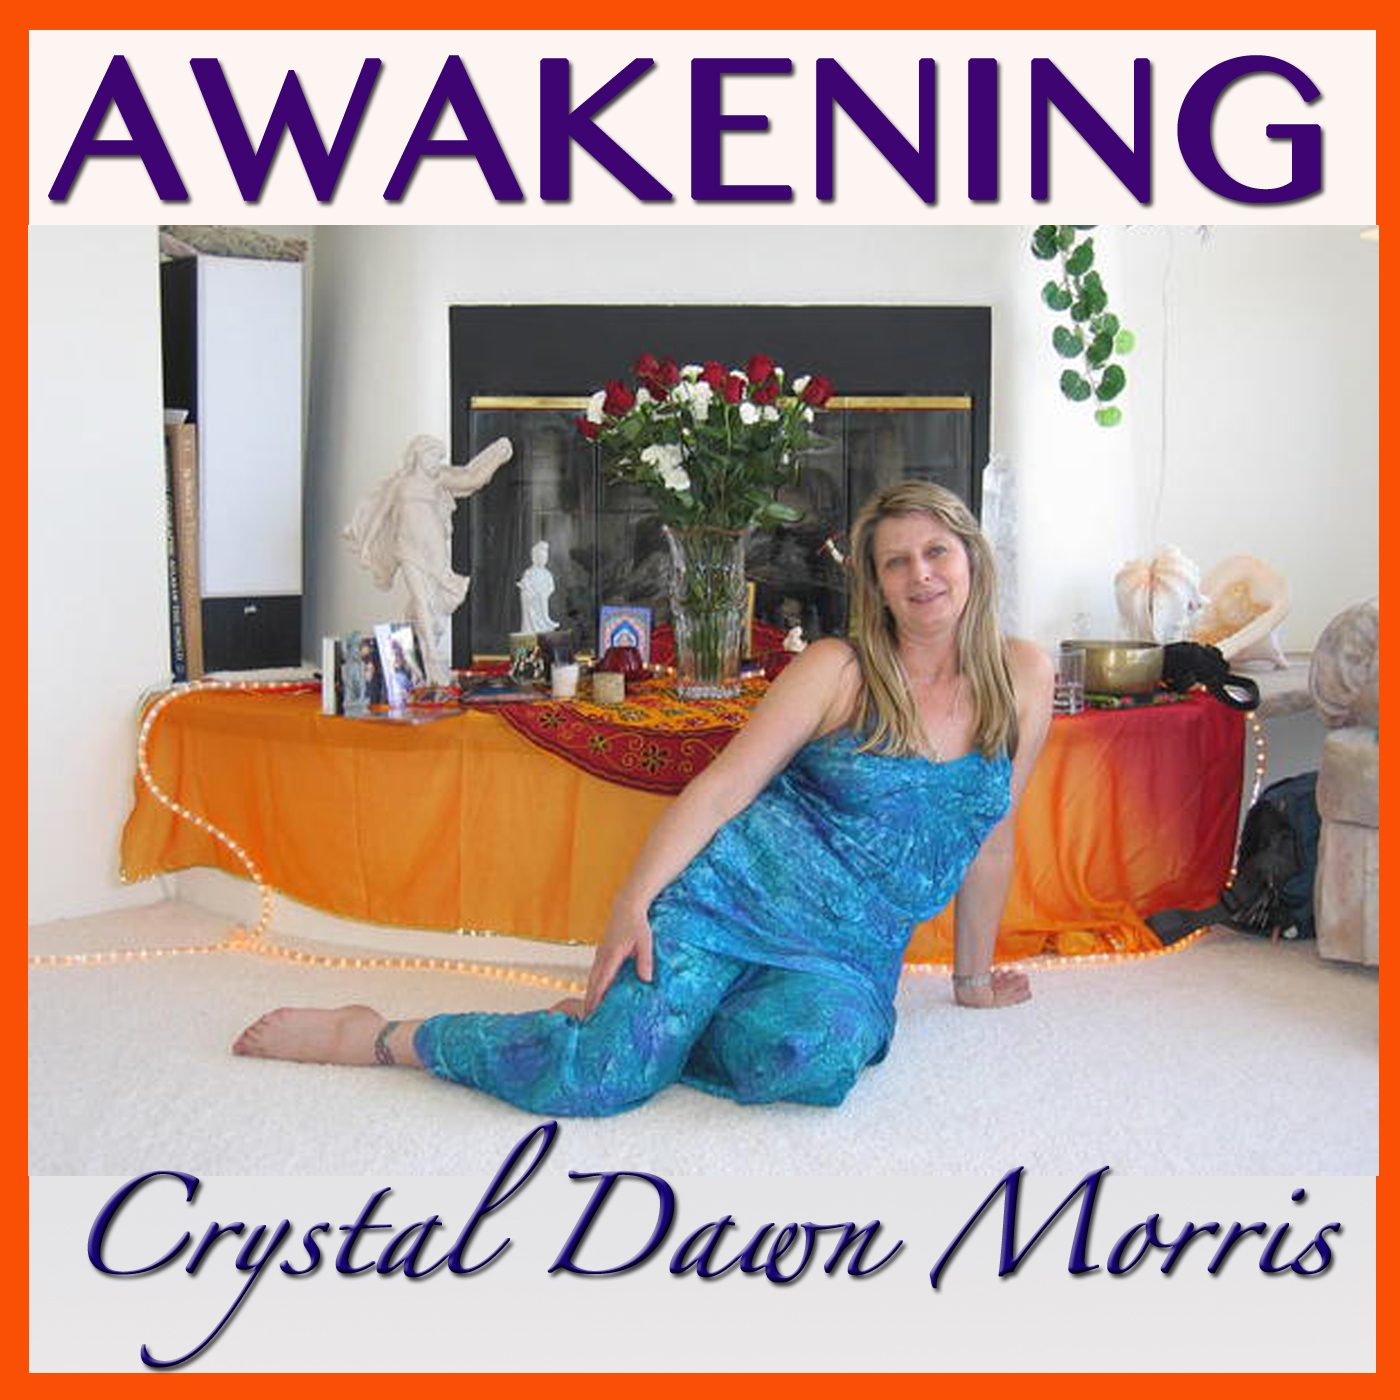 Awaken podcast Crystal Dawn